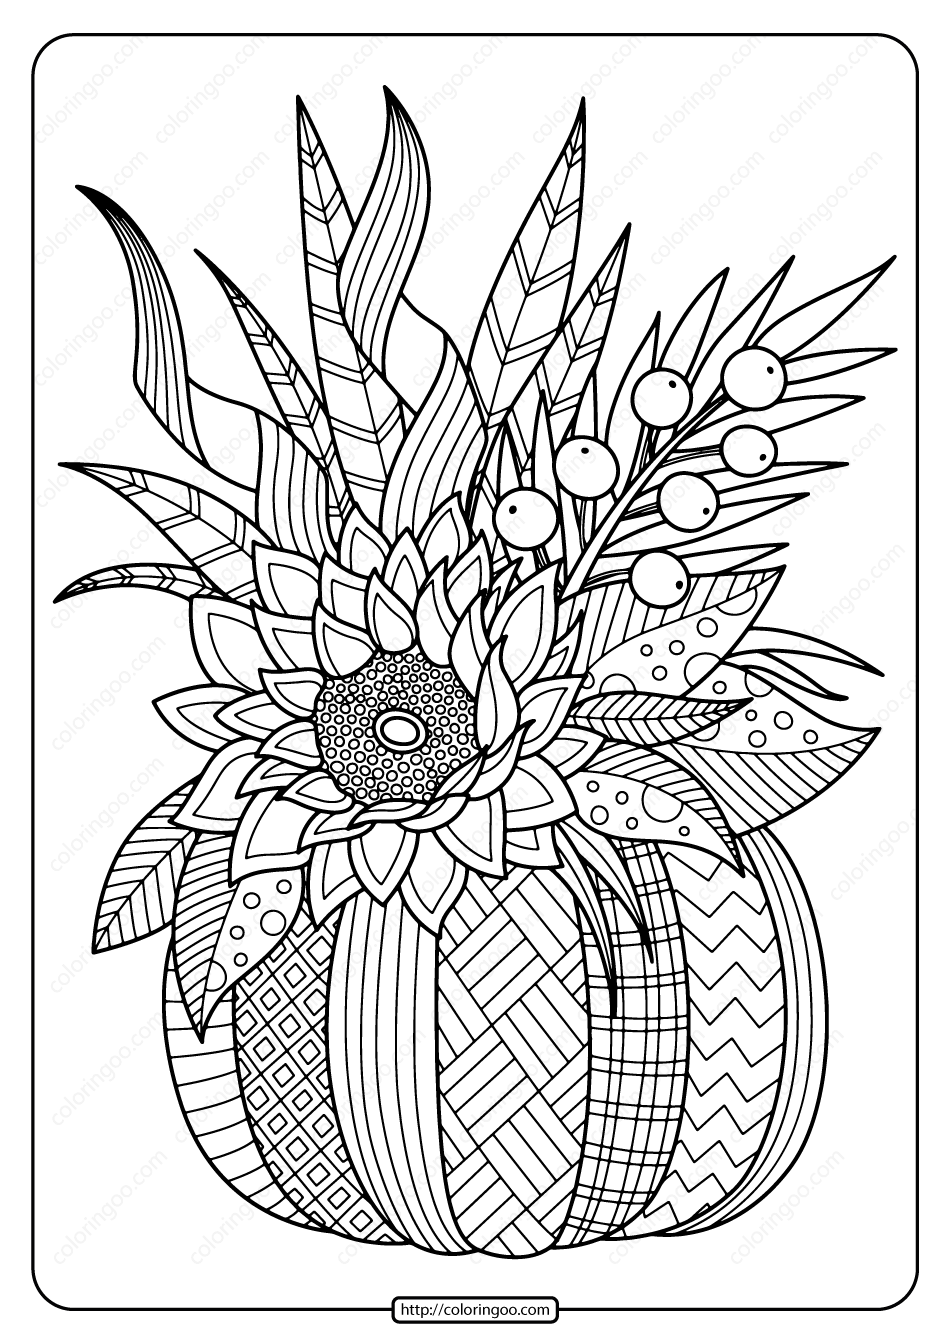 Printable Fall Pumpkin With Flower Coloring Page Free Halloween Coloring Pages Pumpkin Coloring Pages Halloween Coloring Pages